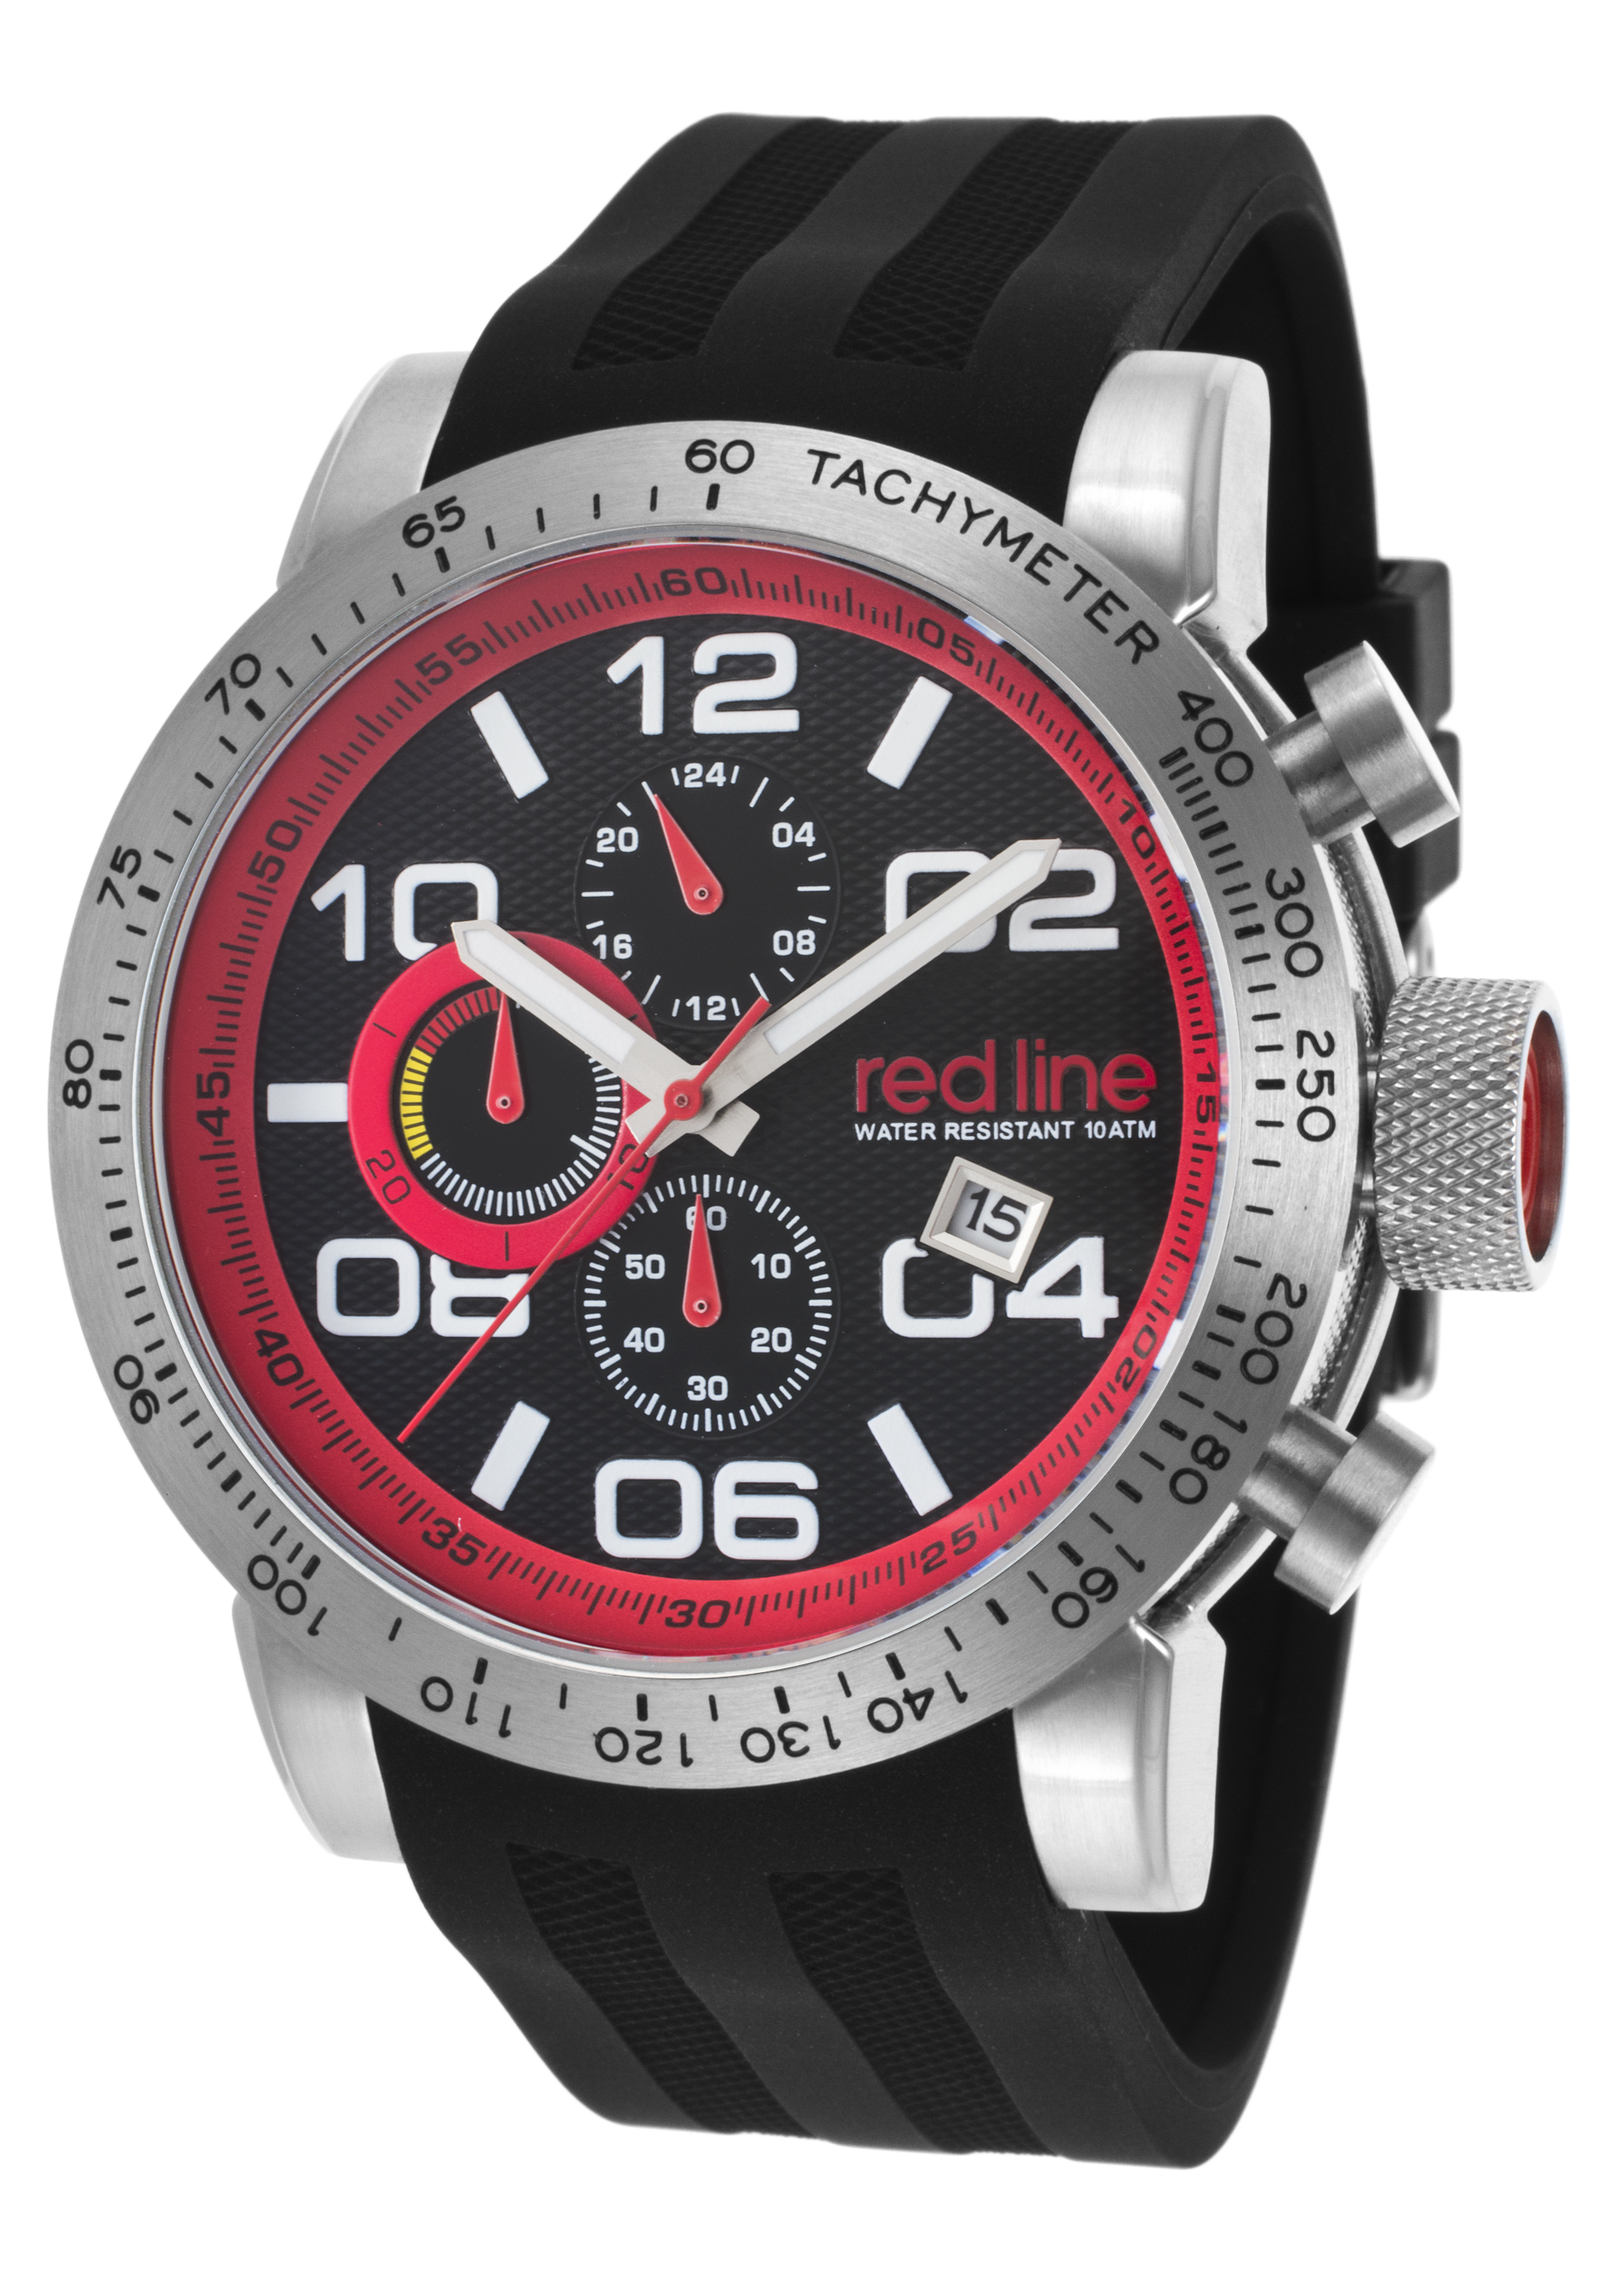 time watches race against sharp inspired magazine racing luxury auto